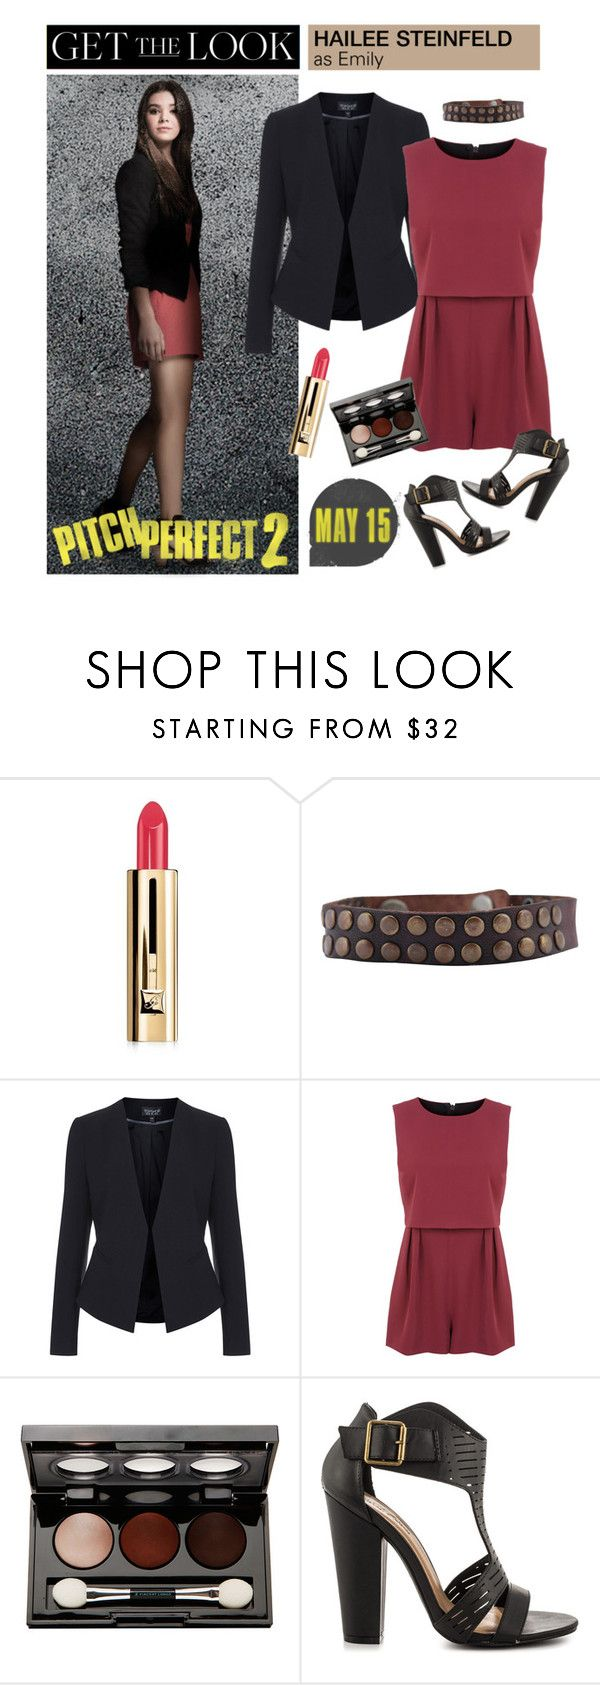 """""""Get the Look: Hailee Steinfeld in Pitch Perfect 2"""" by polyvore-editorial ❤ liked on Polyvore featuring WALL, Guerlain, HTC, Topshop, Miss Selfridge, Vincent Longo, Michael Antonio, emily, haileesteinfeld and pitchperfect2"""